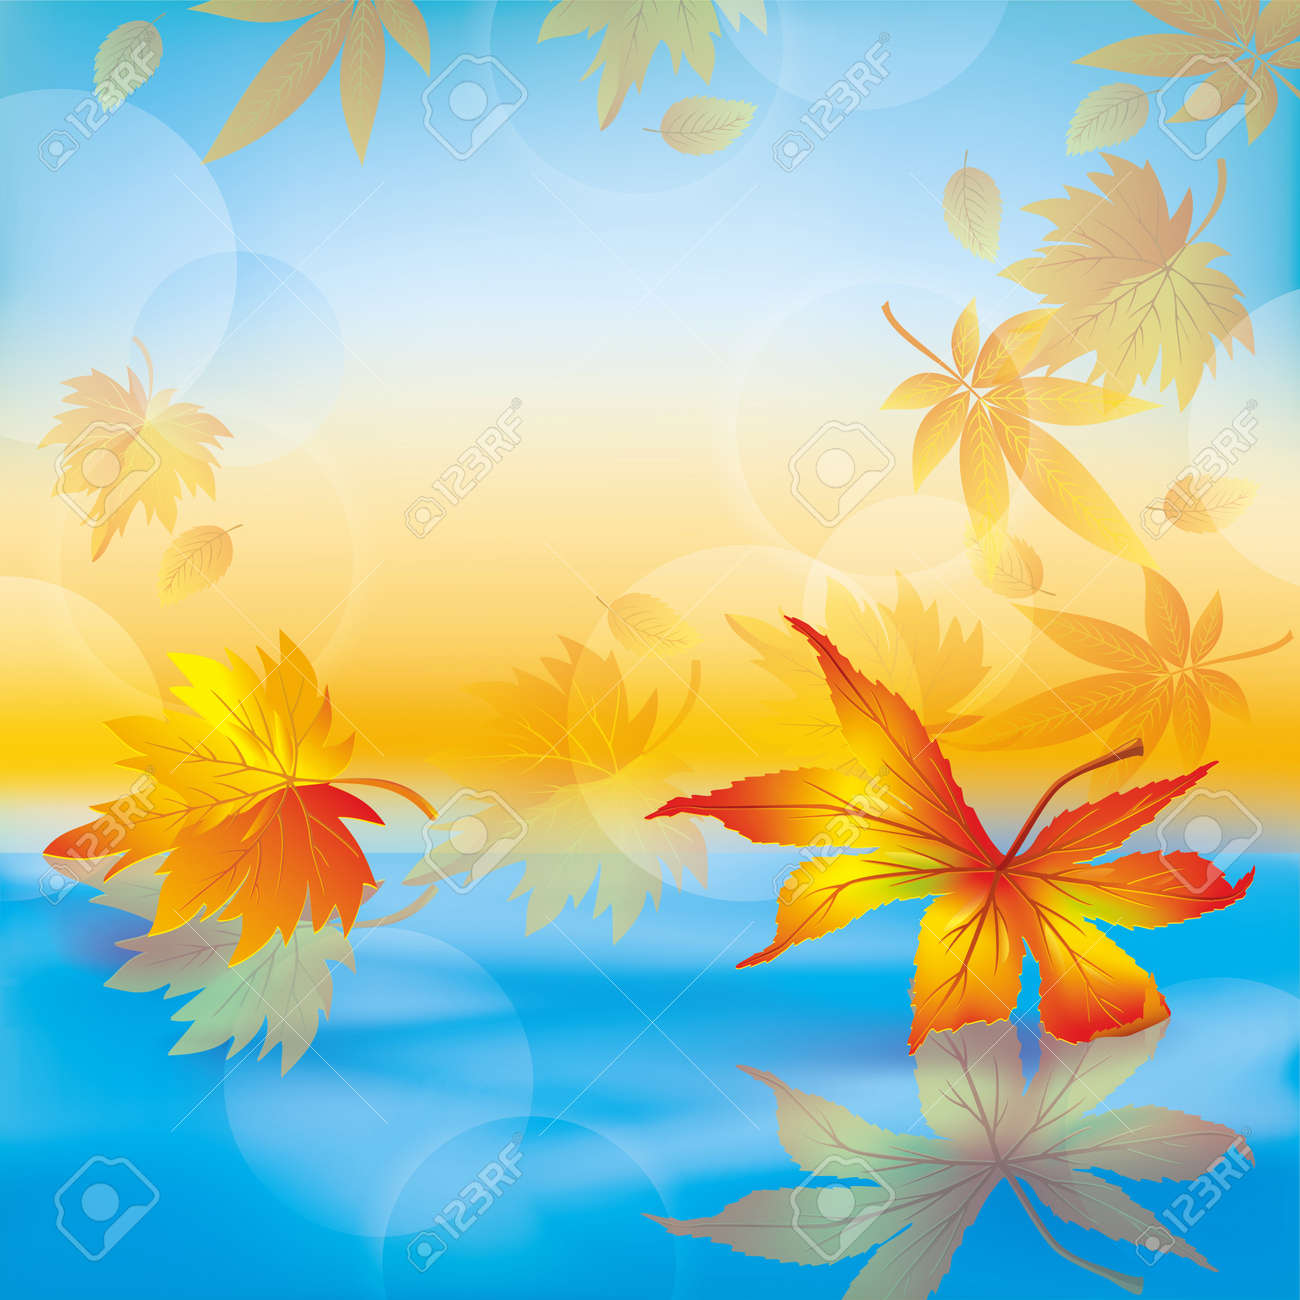 Autumn leaves on blue water, beautiful nature background. Stock Vector - 14689114